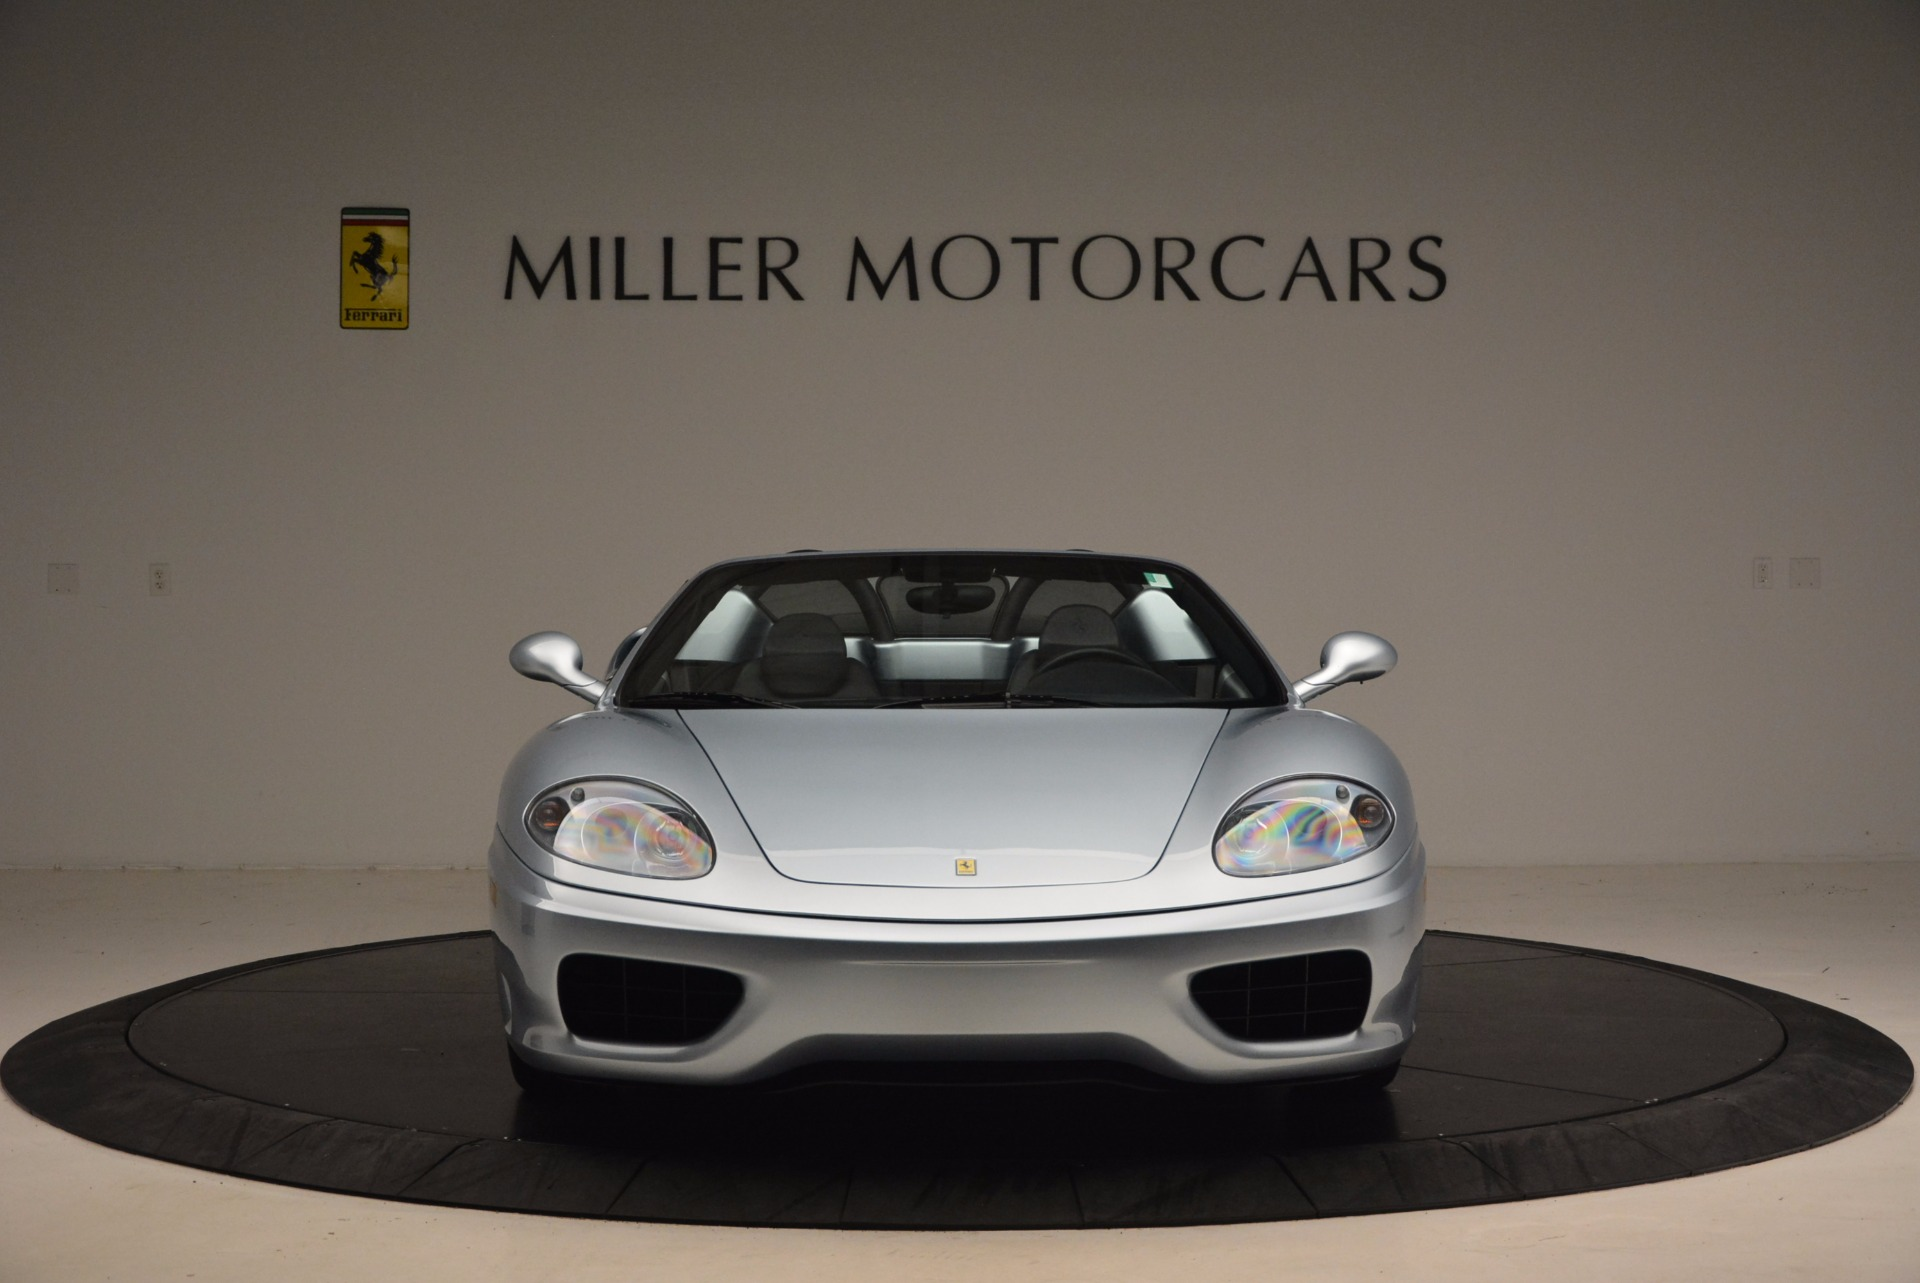 Used 2003 Ferrari 360 Spider 6-Speed Manual For Sale In Greenwich, CT 1445_p12